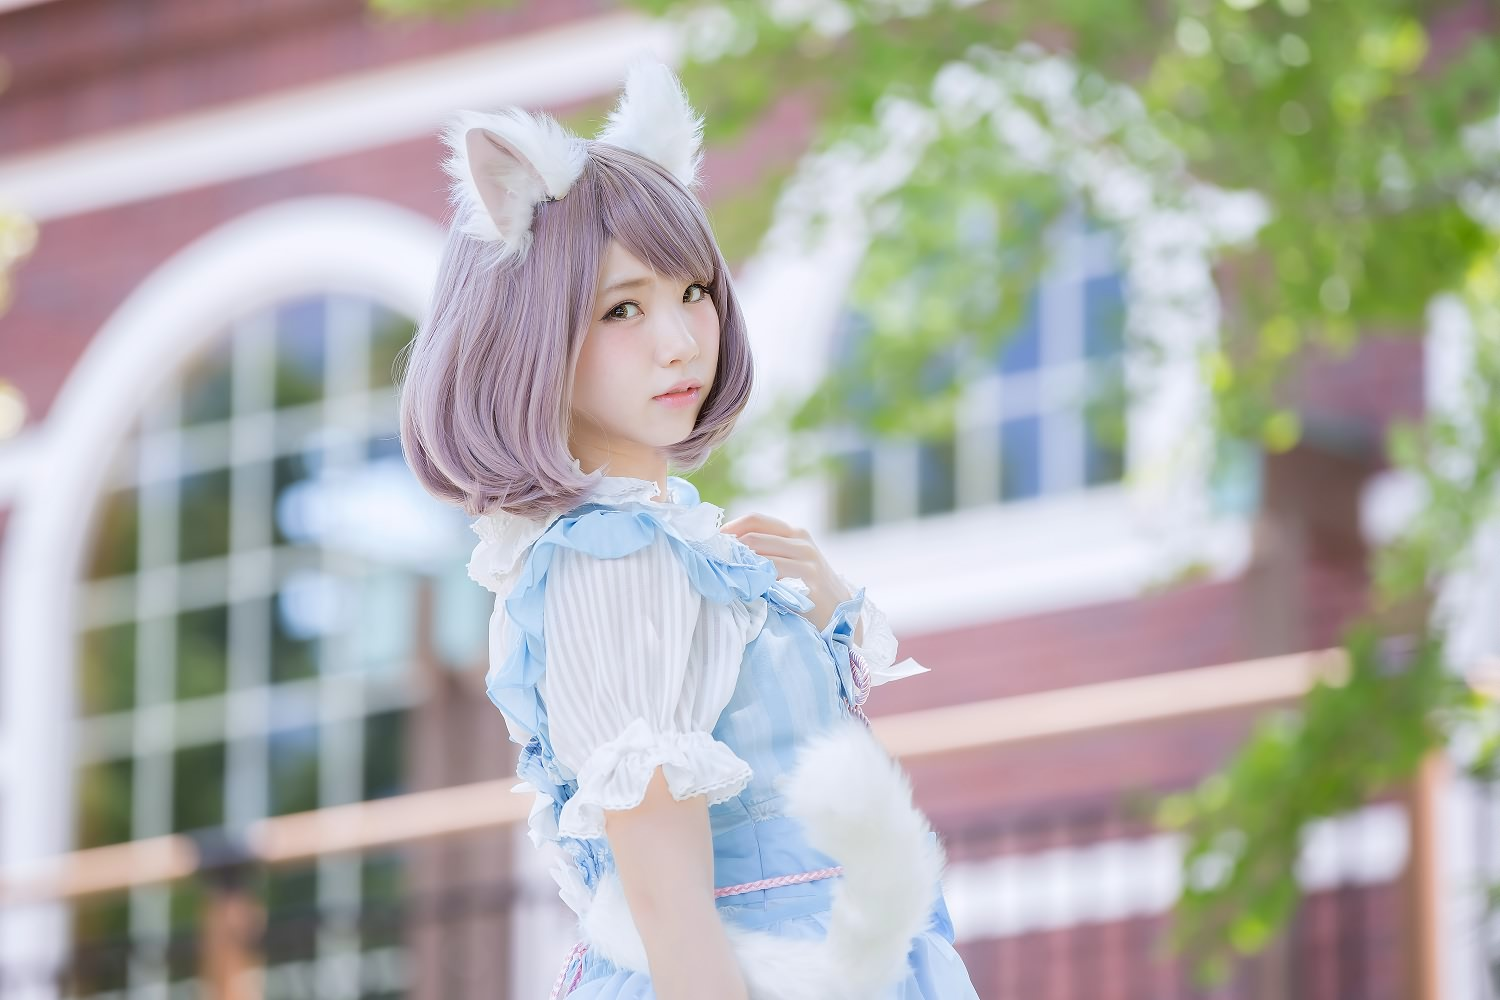 HTB1KnEFONjaK1RjSZFAq6zdLFXa1 - Cosplay coser [一只肉酱阿]狐狸尾巴 kawaii fox tail